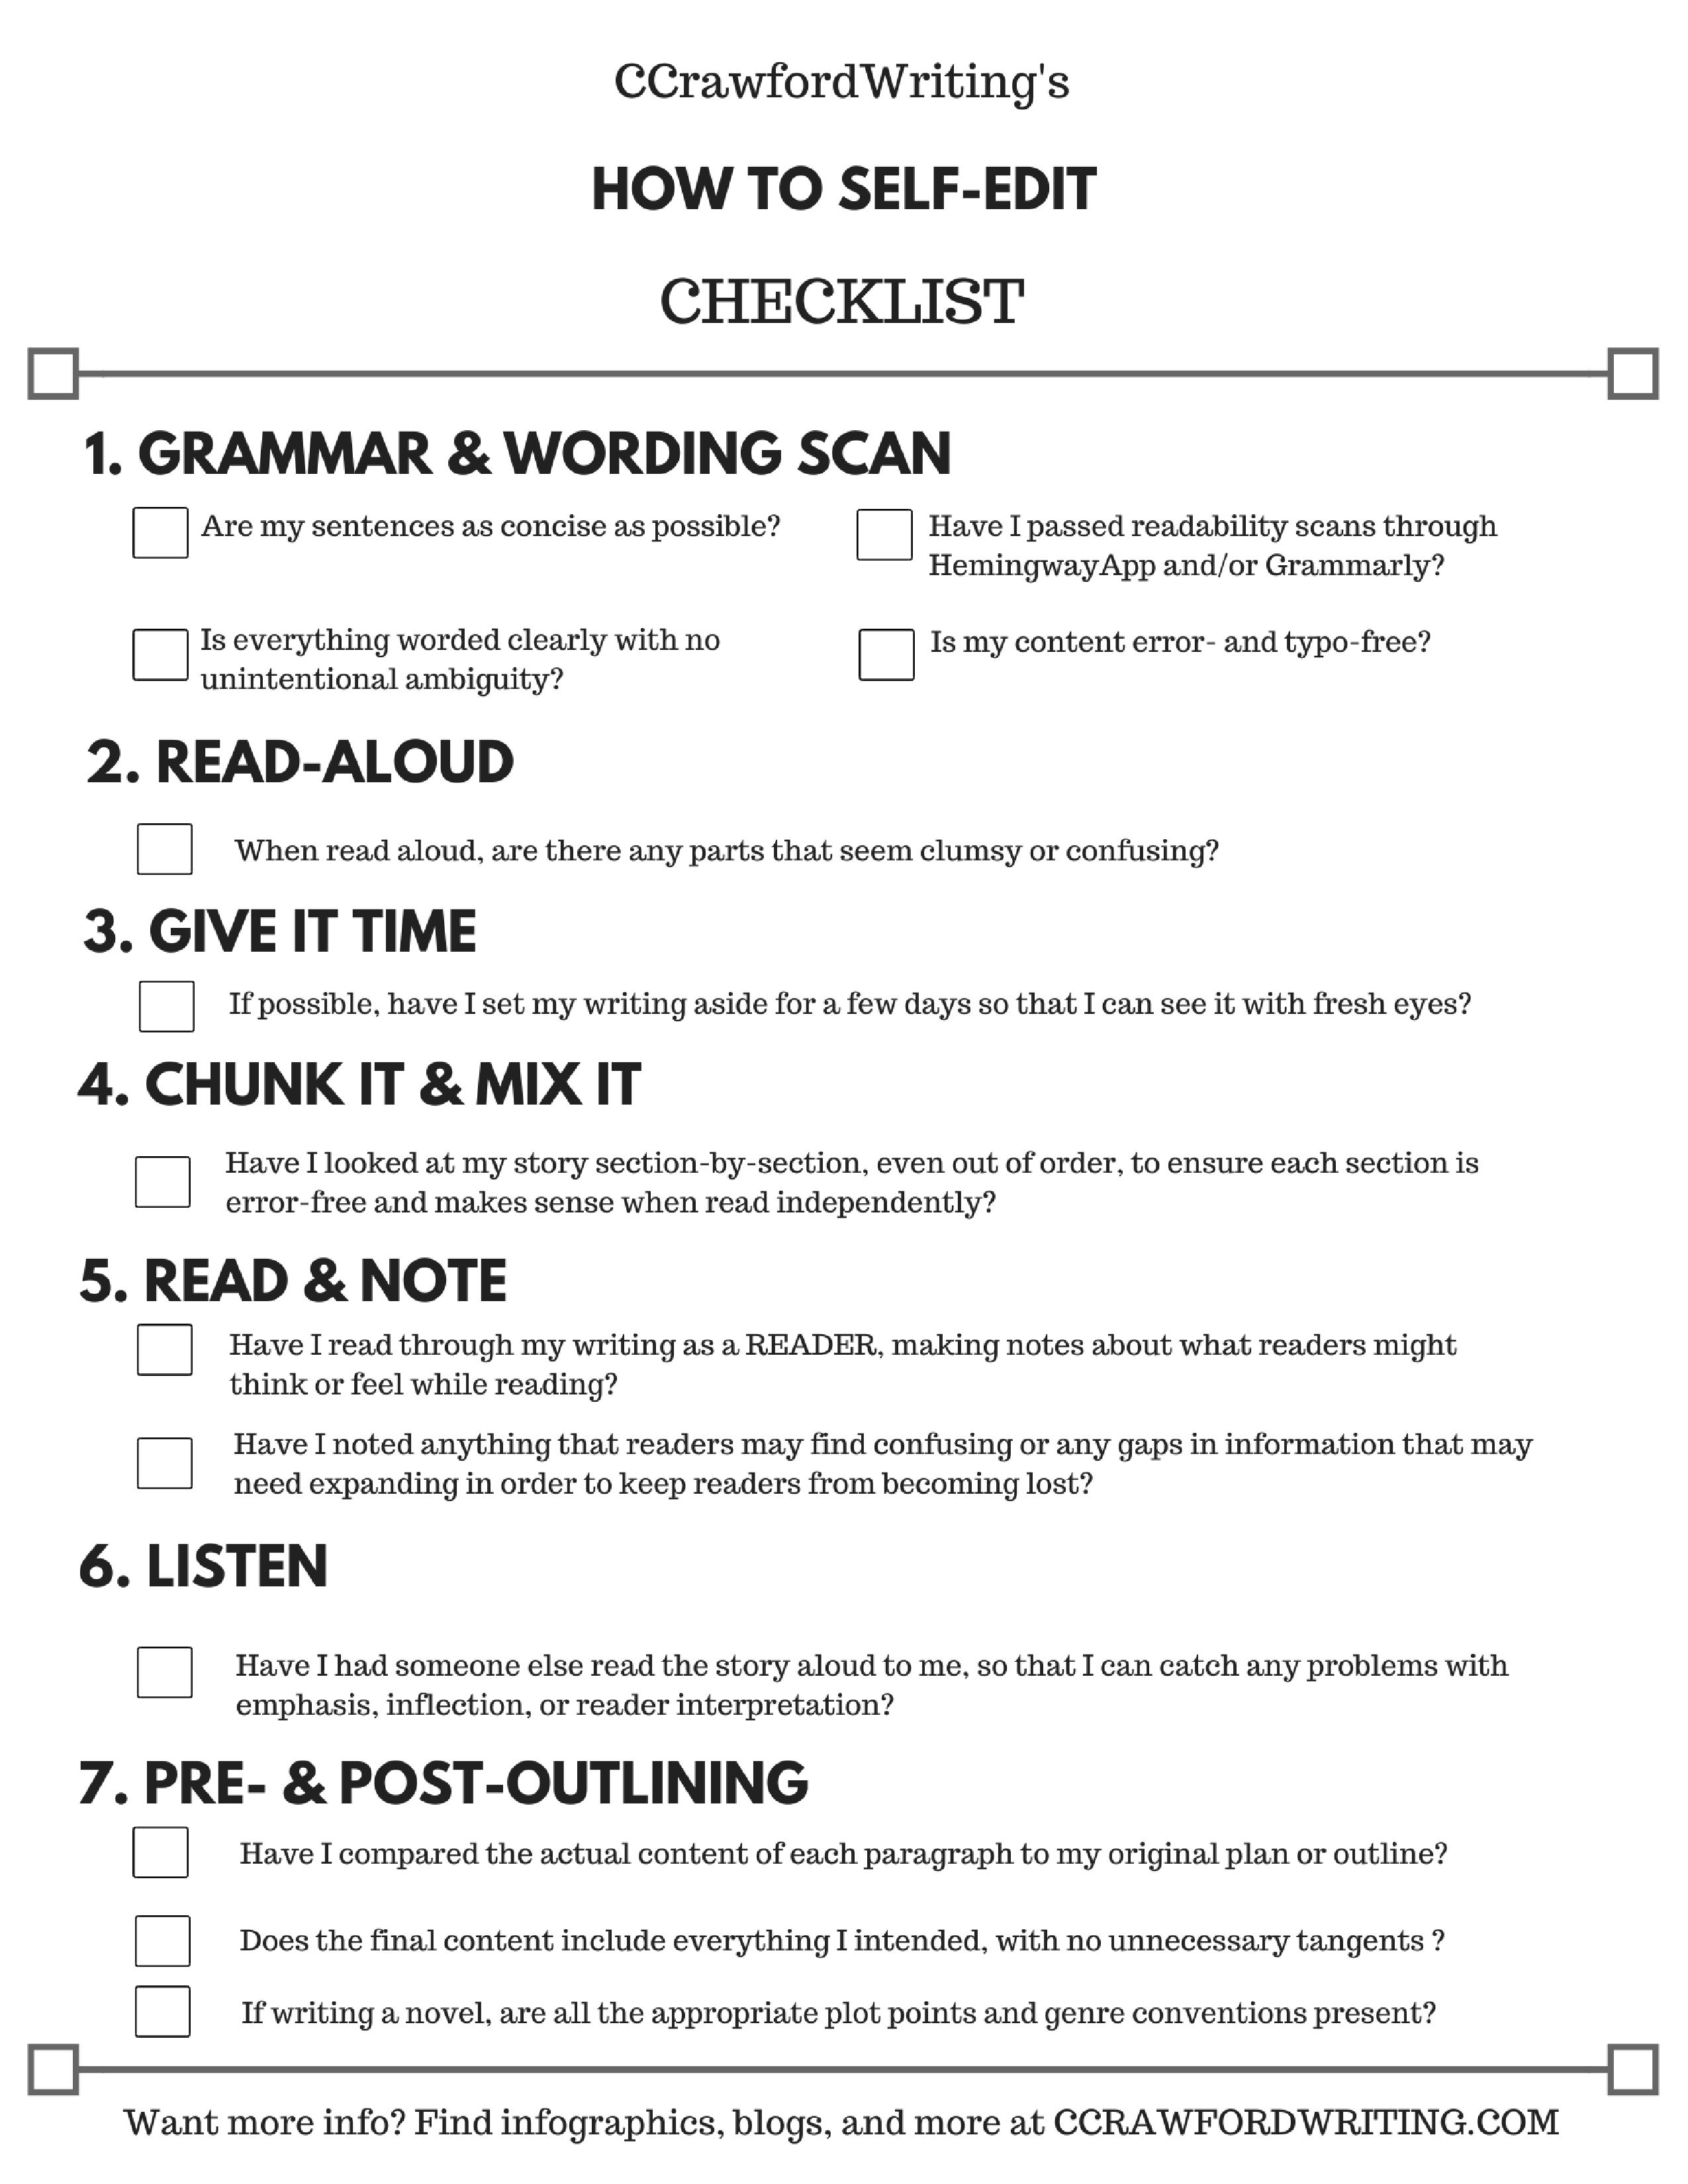 How To Self Edit Checklist